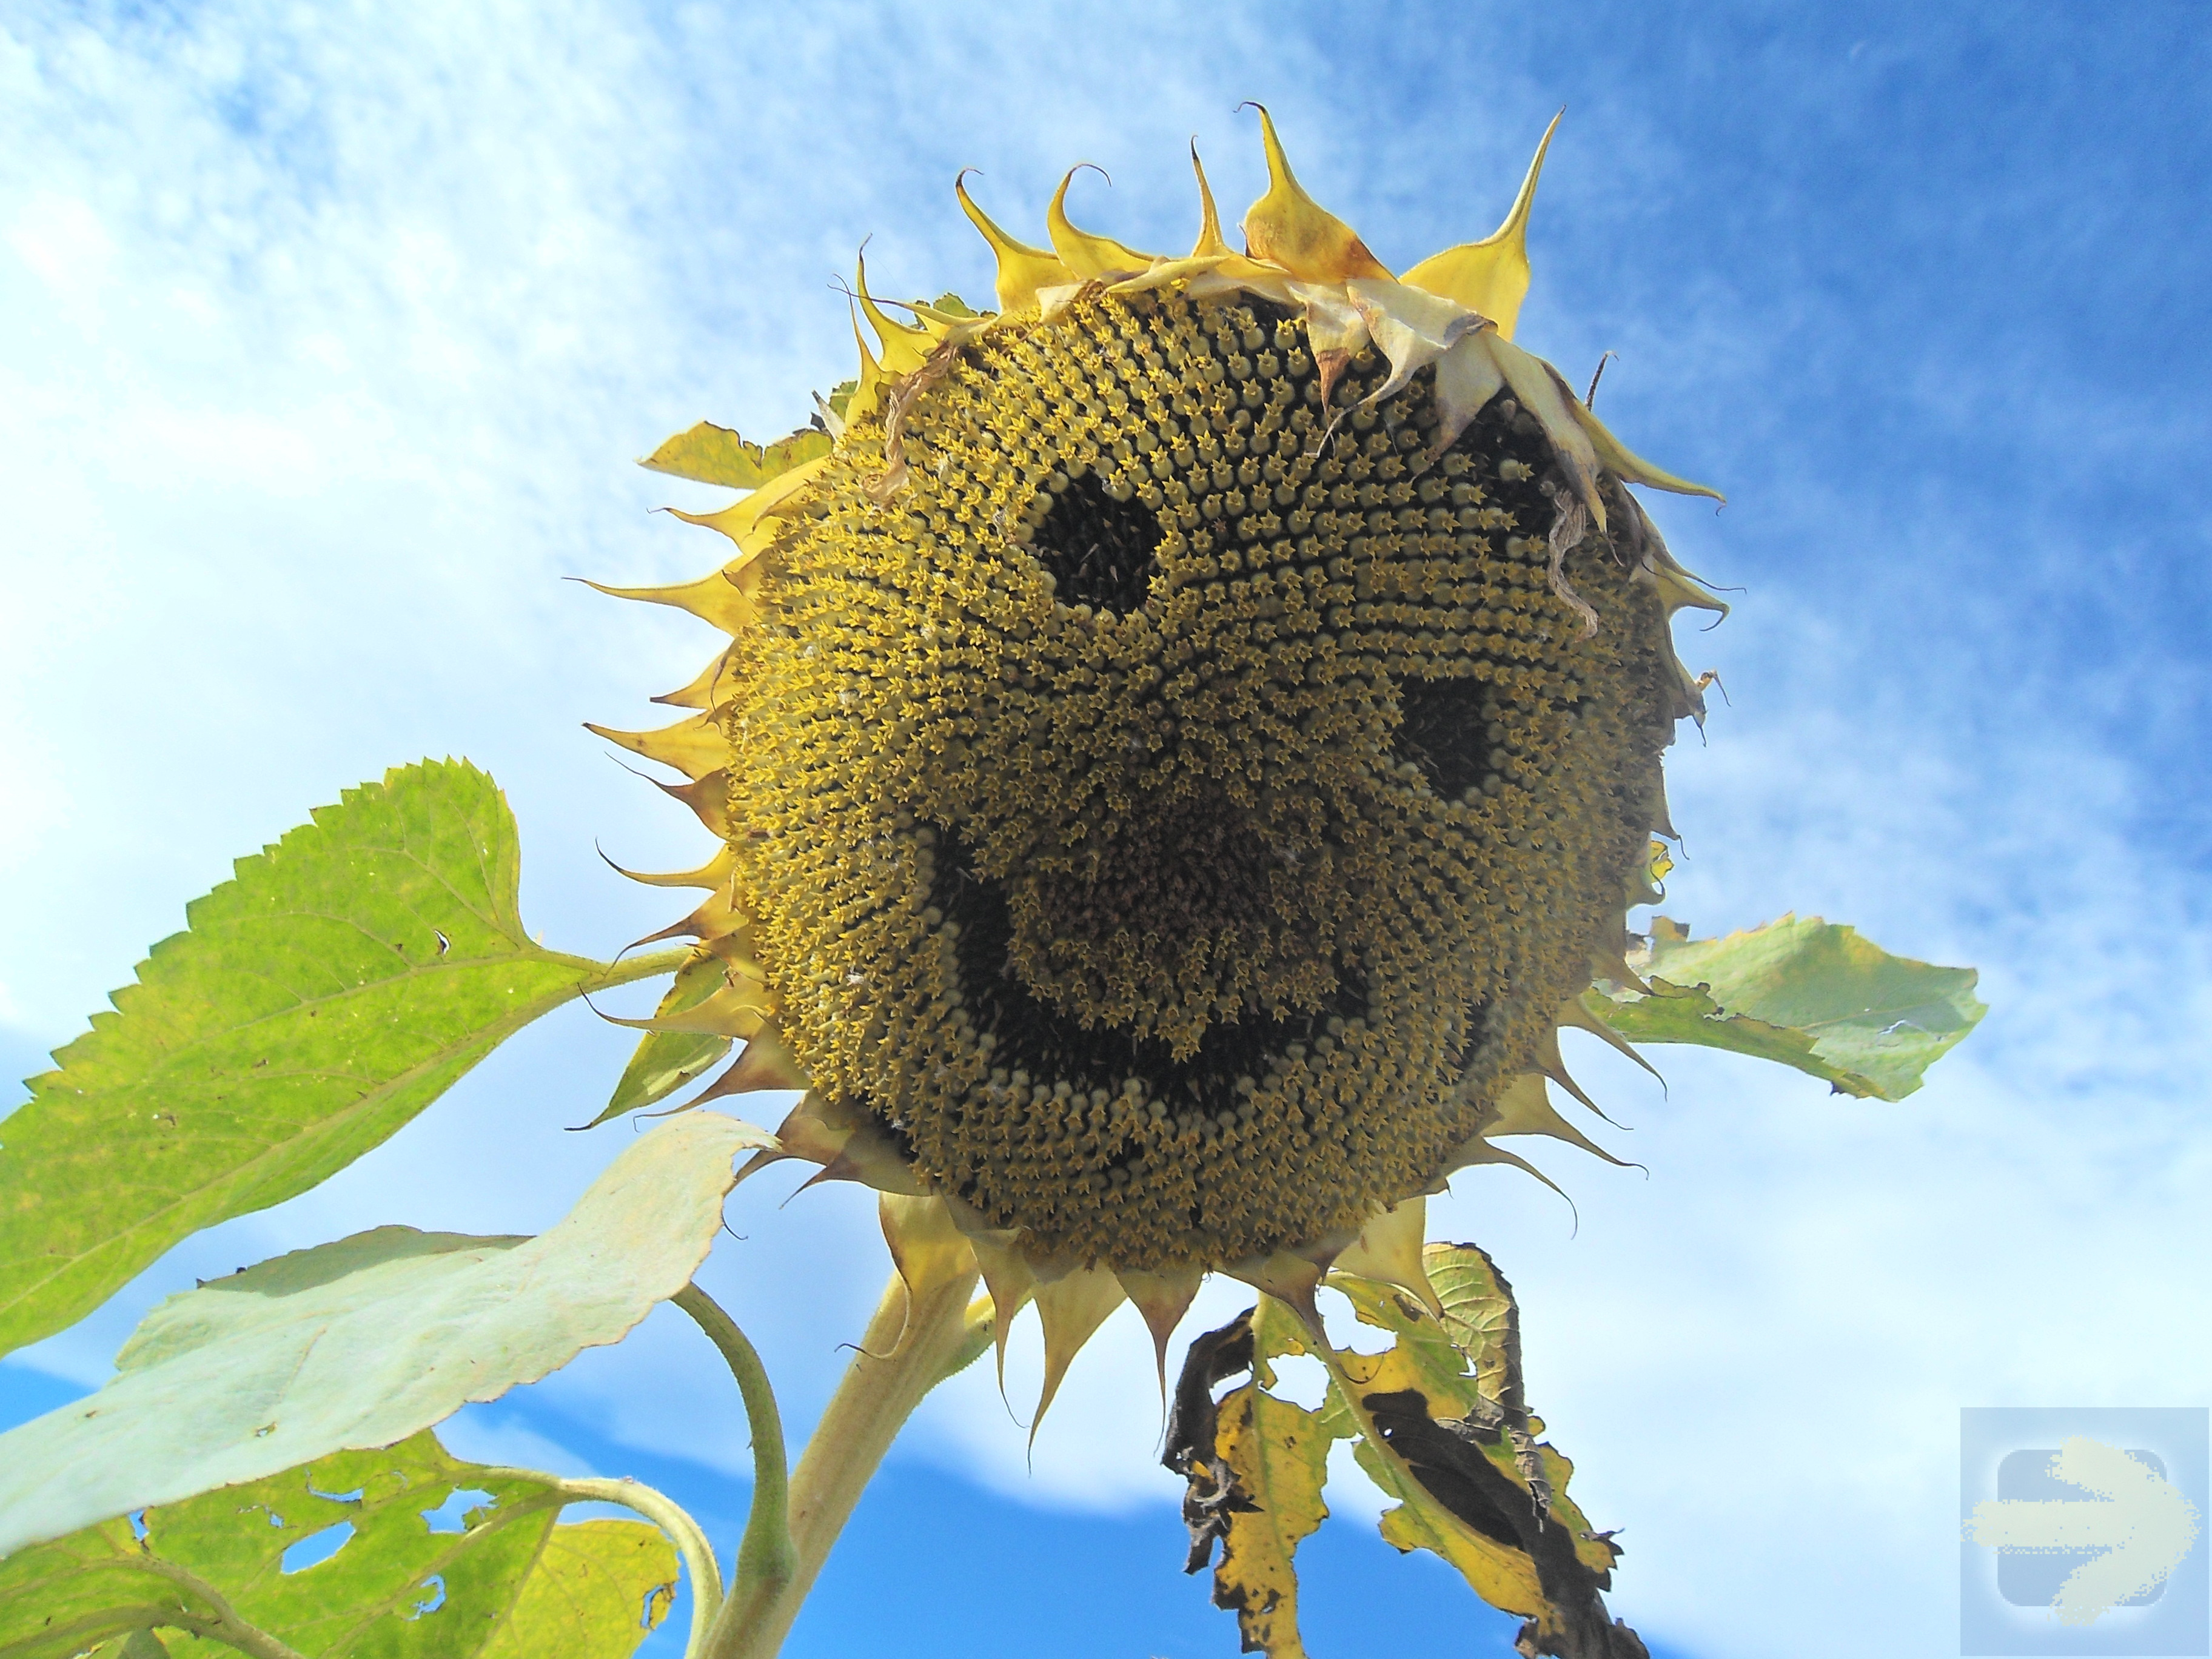 One of the happiest sunflowers on the Camino!